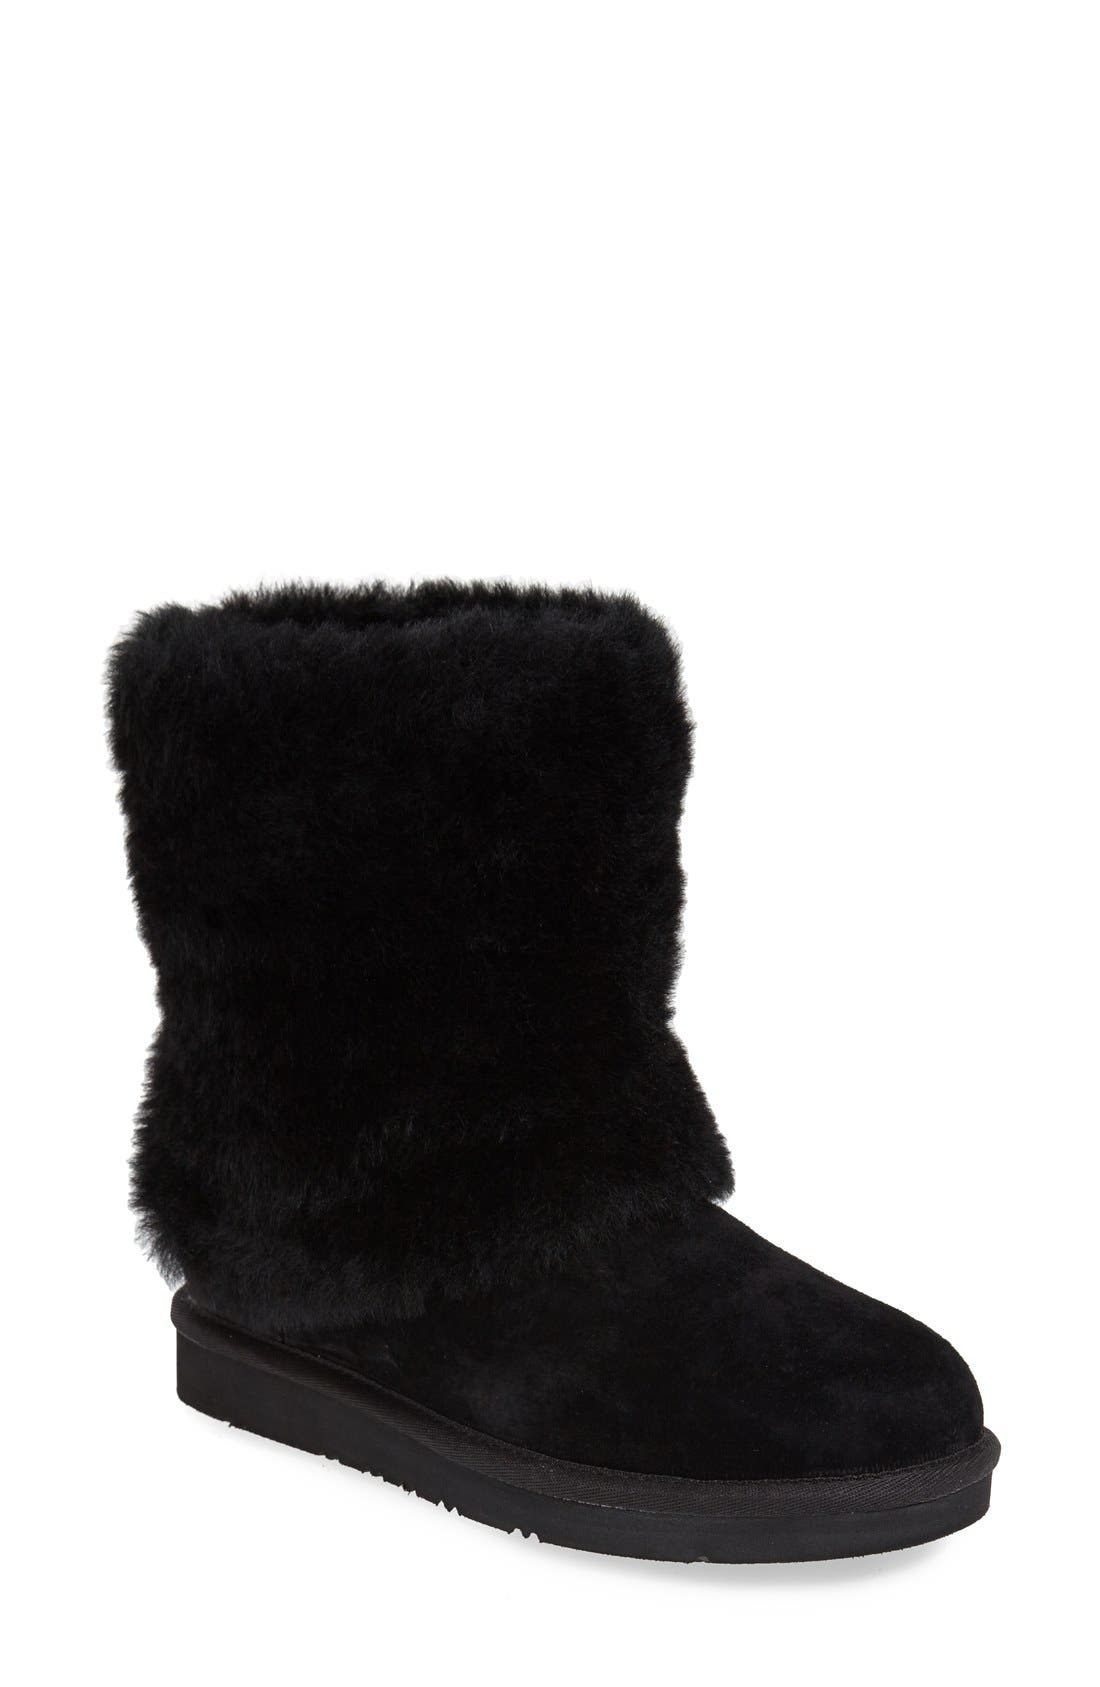 Alternate Image 1 Selected - UGG® 'Patten' Water Resistant Silkee™ Suede Shearling Cuff Boot (Women)